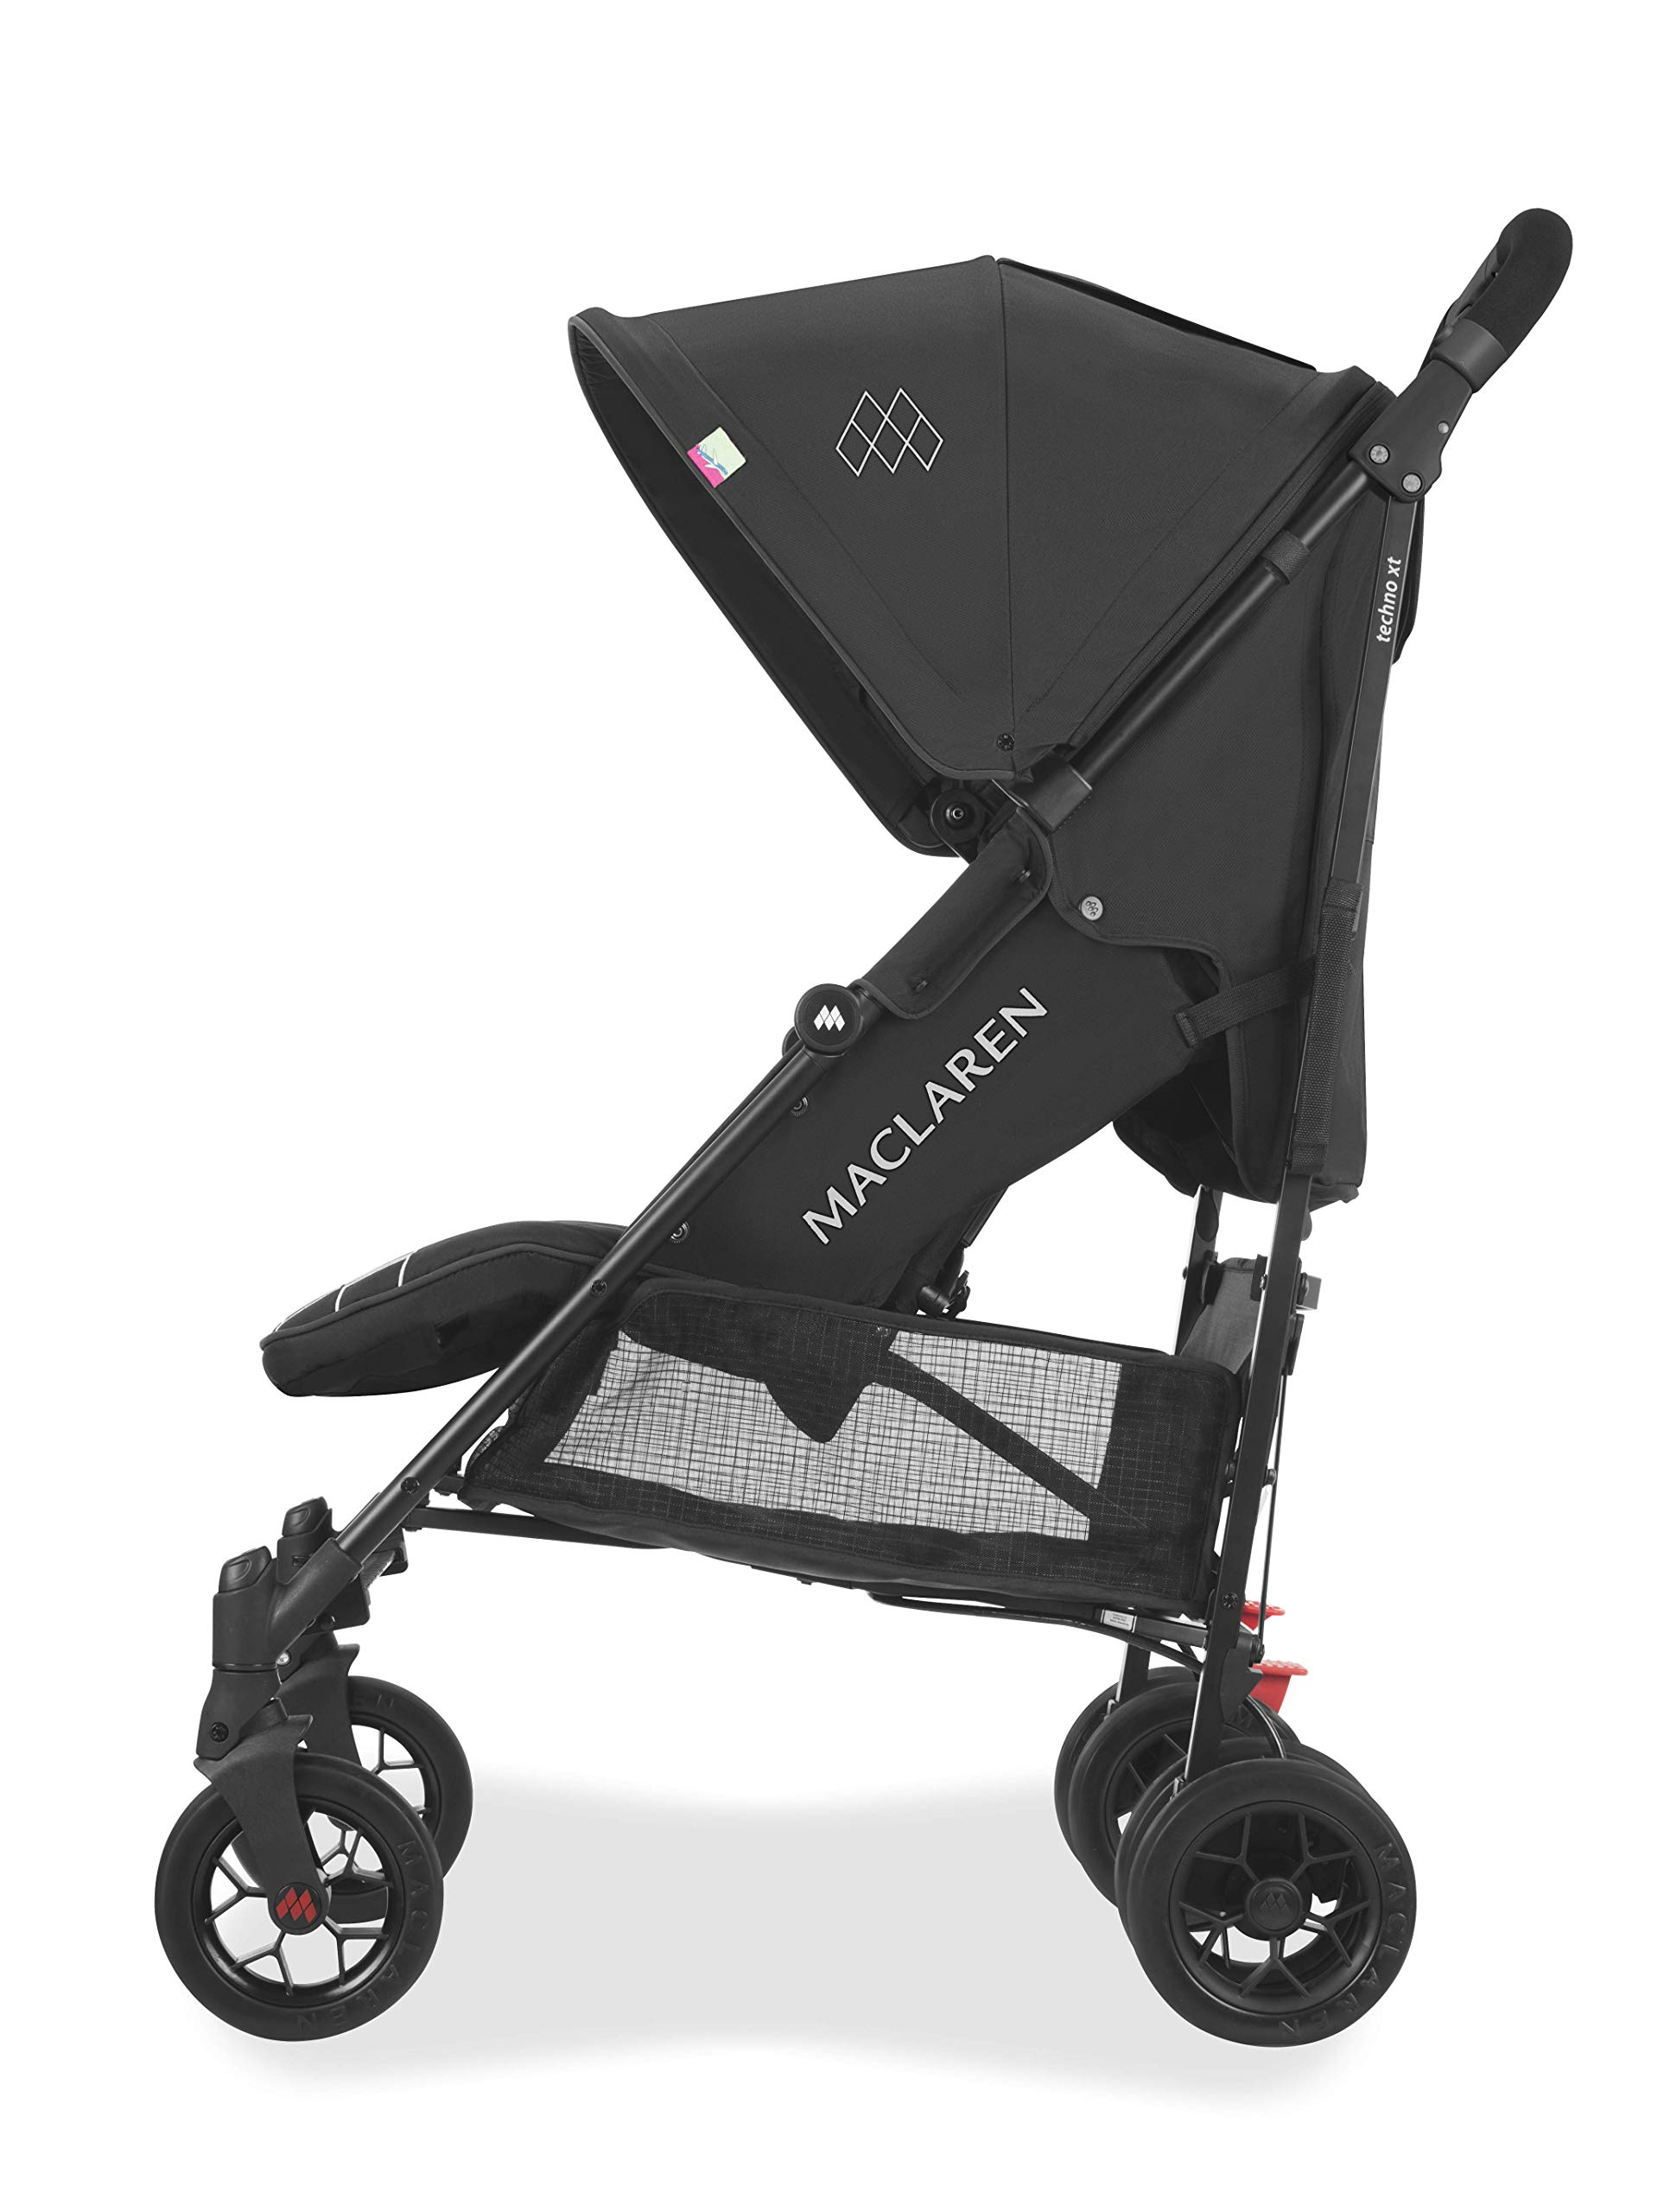 Maclaren Techno arc Stroller - lightweight, compact,Black/Black Maclaren The techno arc's basic weight is 7.1kg; ideal for newborns and children up to 25kg. The folded dimensions are 113cm L x 35cm w x 35cm H. The stroller is assembled The techno arc's padded seat reclines into 4 positions and converts into a new-born safety system. Coupled with ultra light flat-free eva tires and all wheel suspension The techno arc includes a wind-resistant rain cover and headhugger & shoulder pads. Waterproof/ upf 50+ hood to protect from the elements and machine washable seats to keep tidy 2